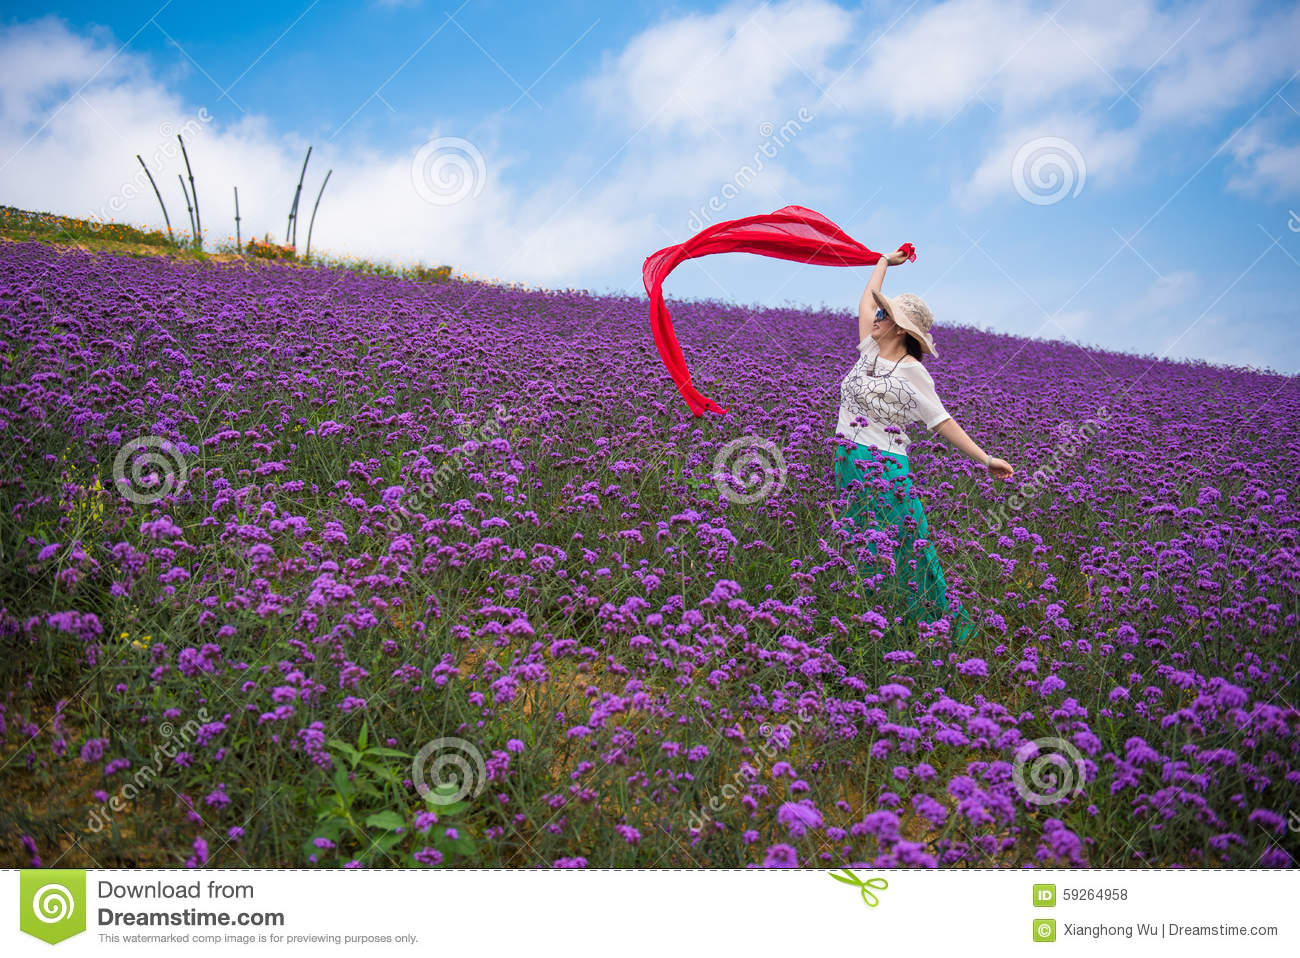 A Dancing Woman in Stunning Large Lavender Field